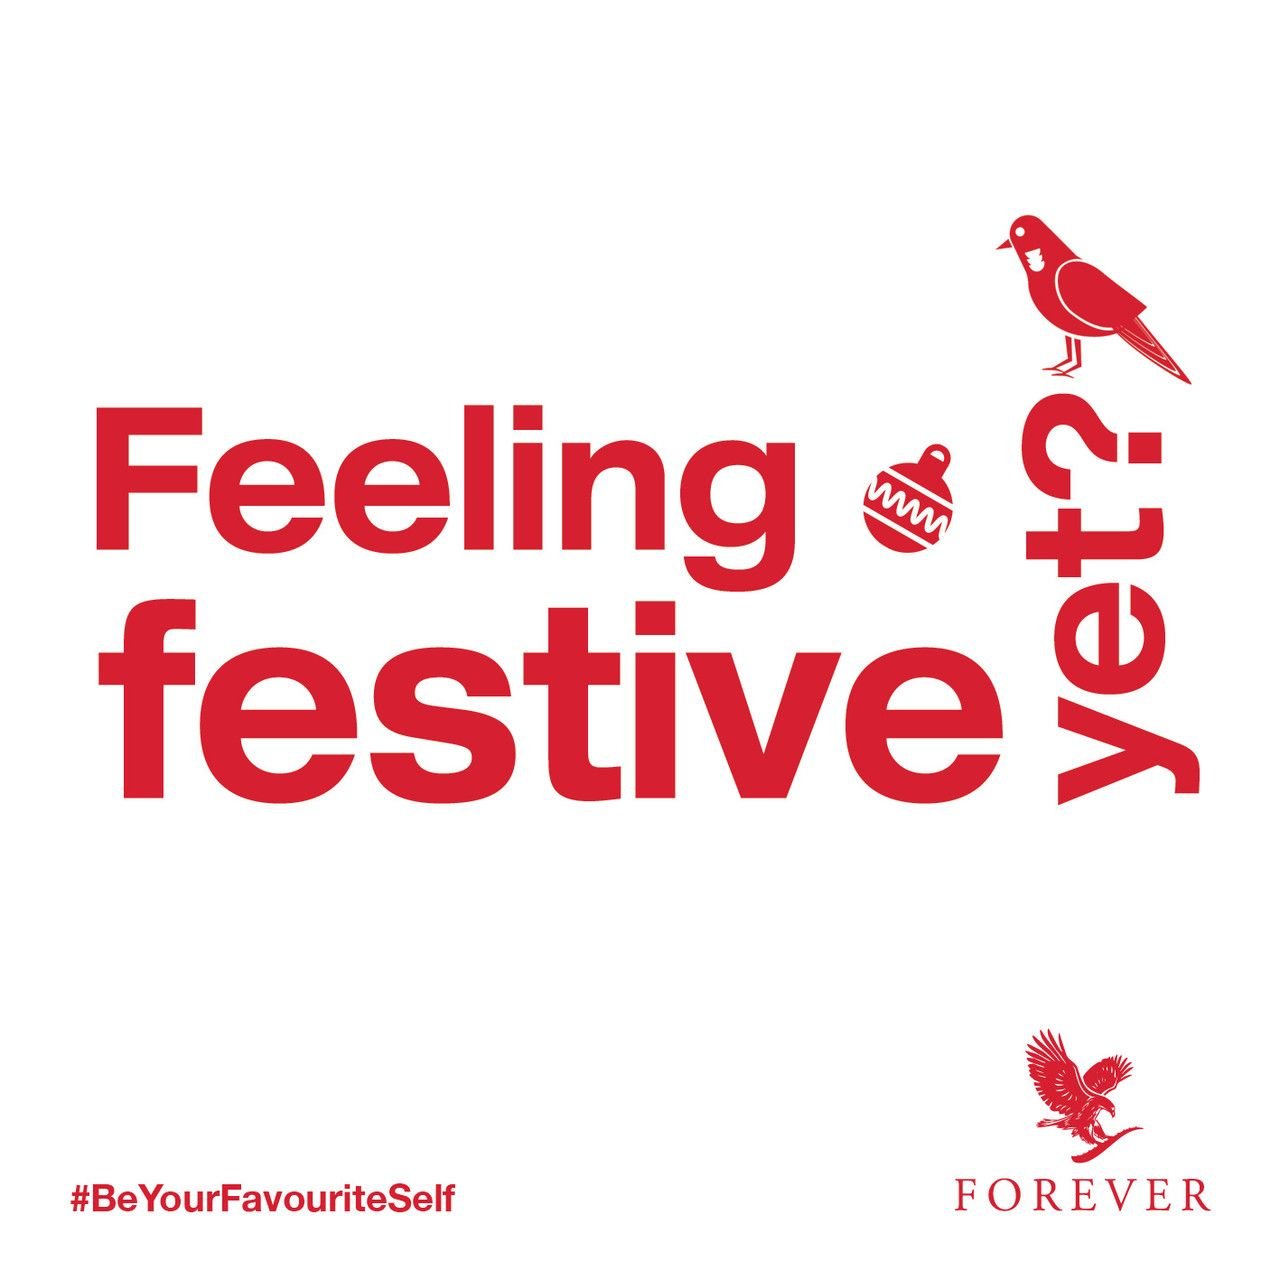 Lets get some festive cheer with #Forever :) #BeYourFavouriteSelf <3